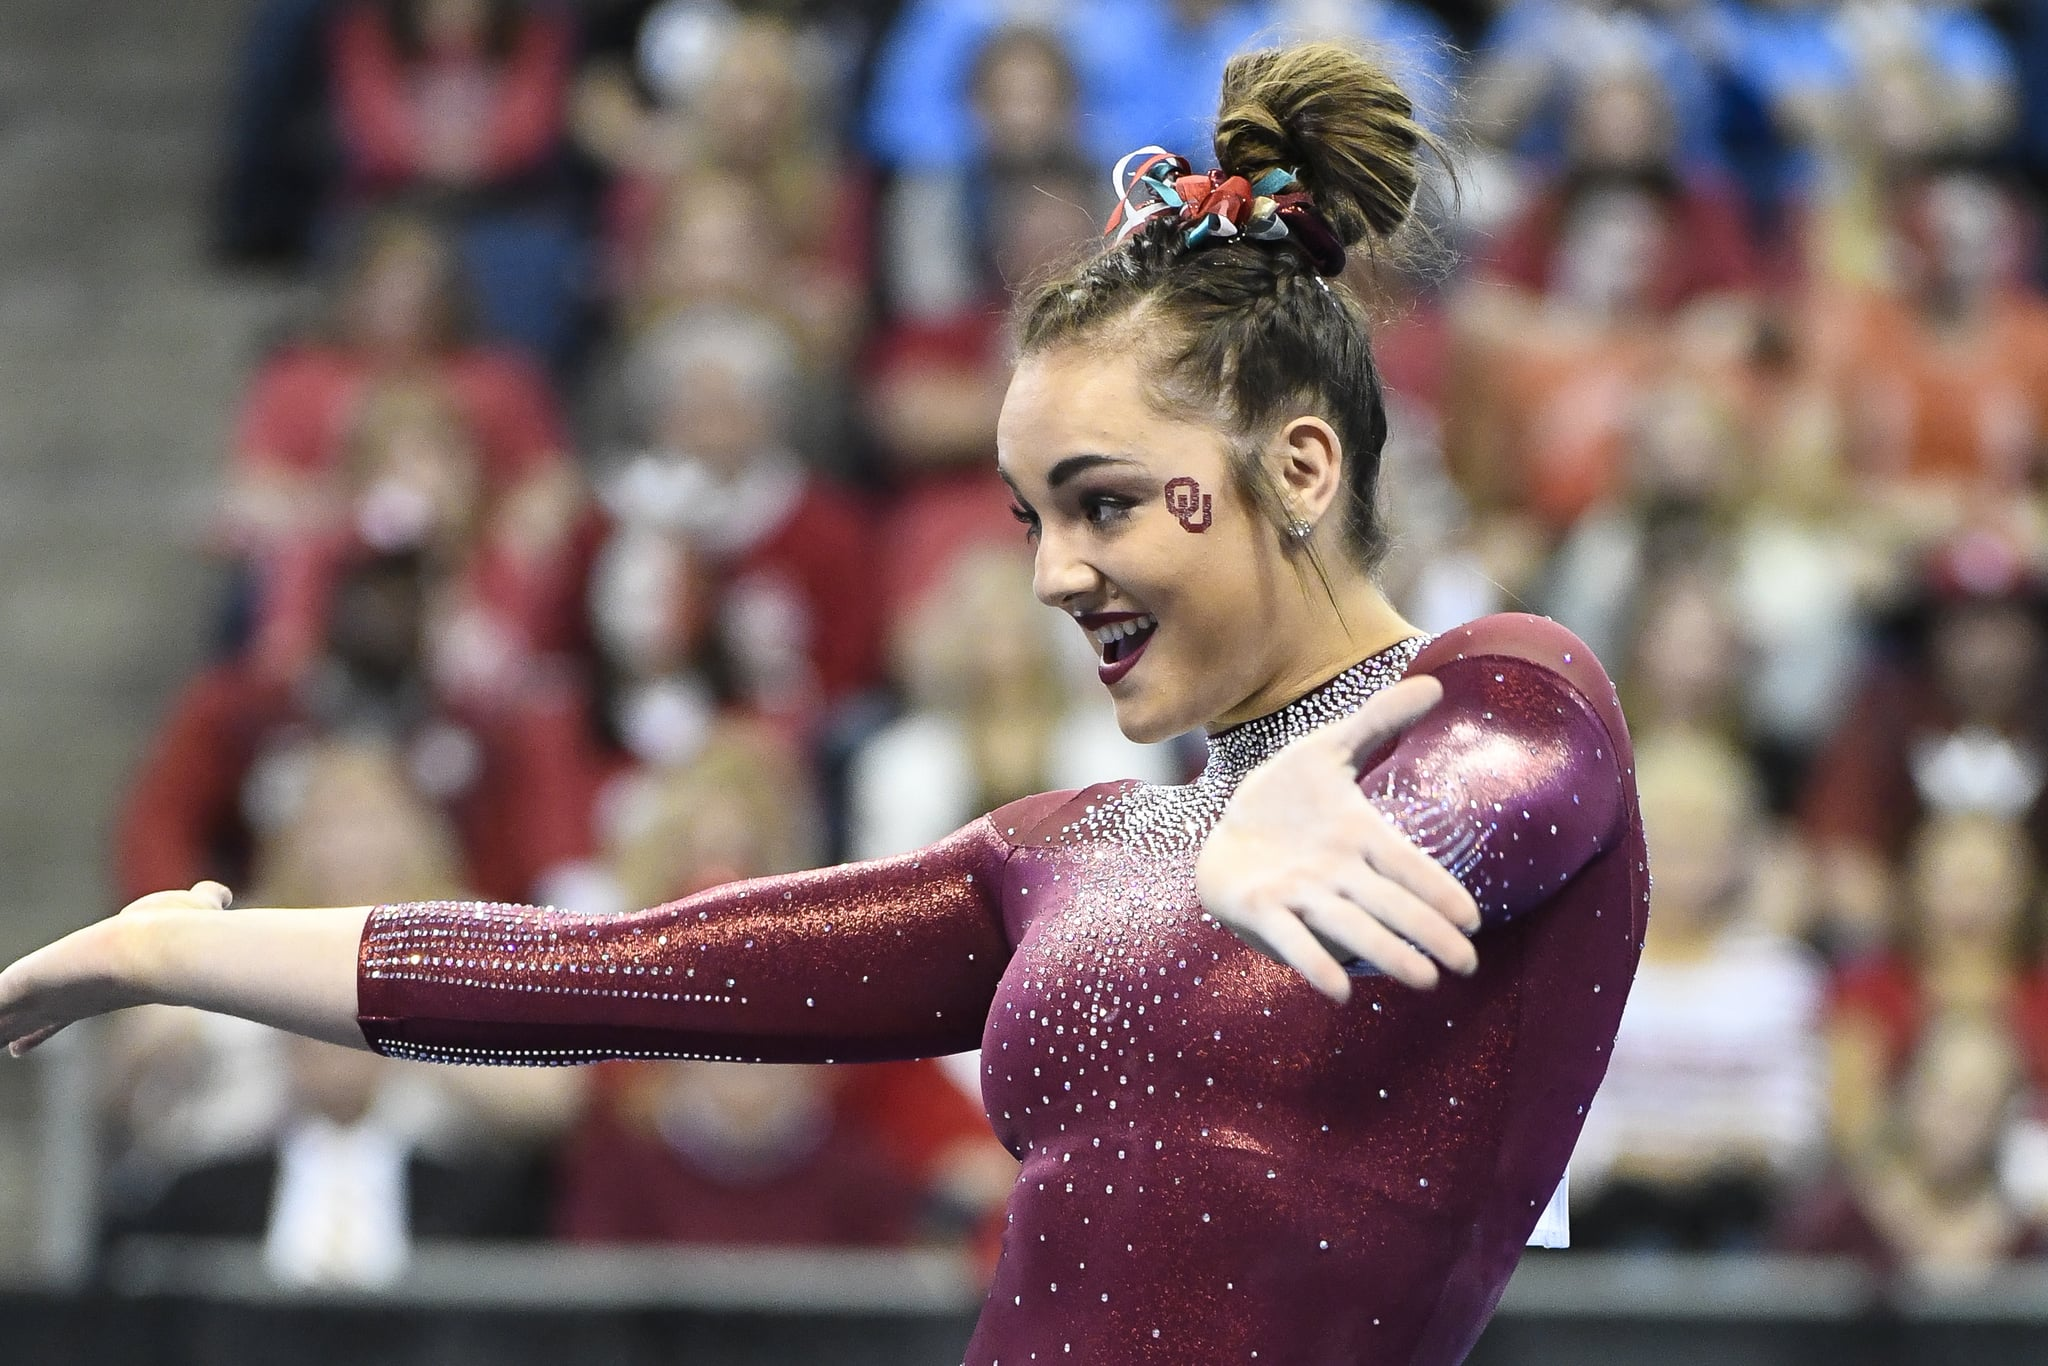 ST LOUIS, MO - APRIL 21: Maggie Nichols #511 of the University of Oklahoma performs a floor routine during the Division I Women's Gymnastics Championship held at Chaifetz Arena on April 21, 2018 in St Louis, Missouri. UCLA won with a score of 197.5625 points. (Photo by Tim Nwachukwu/NCAA Photos via Getty Images)